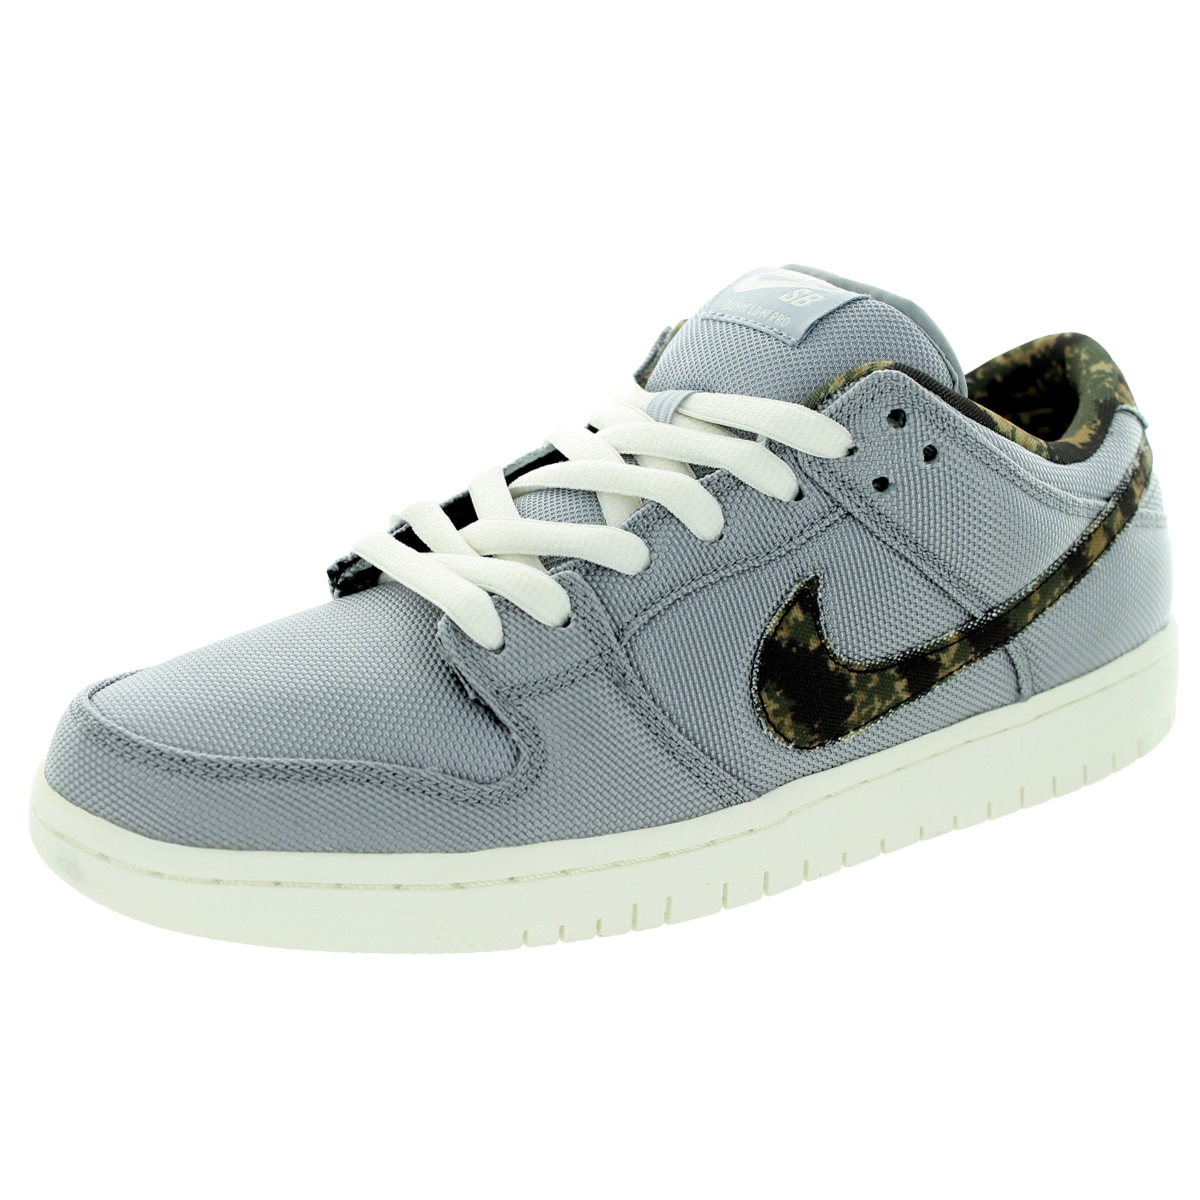 a6c385707dc6f1 Shop Nike Men s Dunk Low Pro Sb Wolf Grey Medium Olive Sail Skate Shoe -  Free Shipping Today - Overstock.com - 12329123